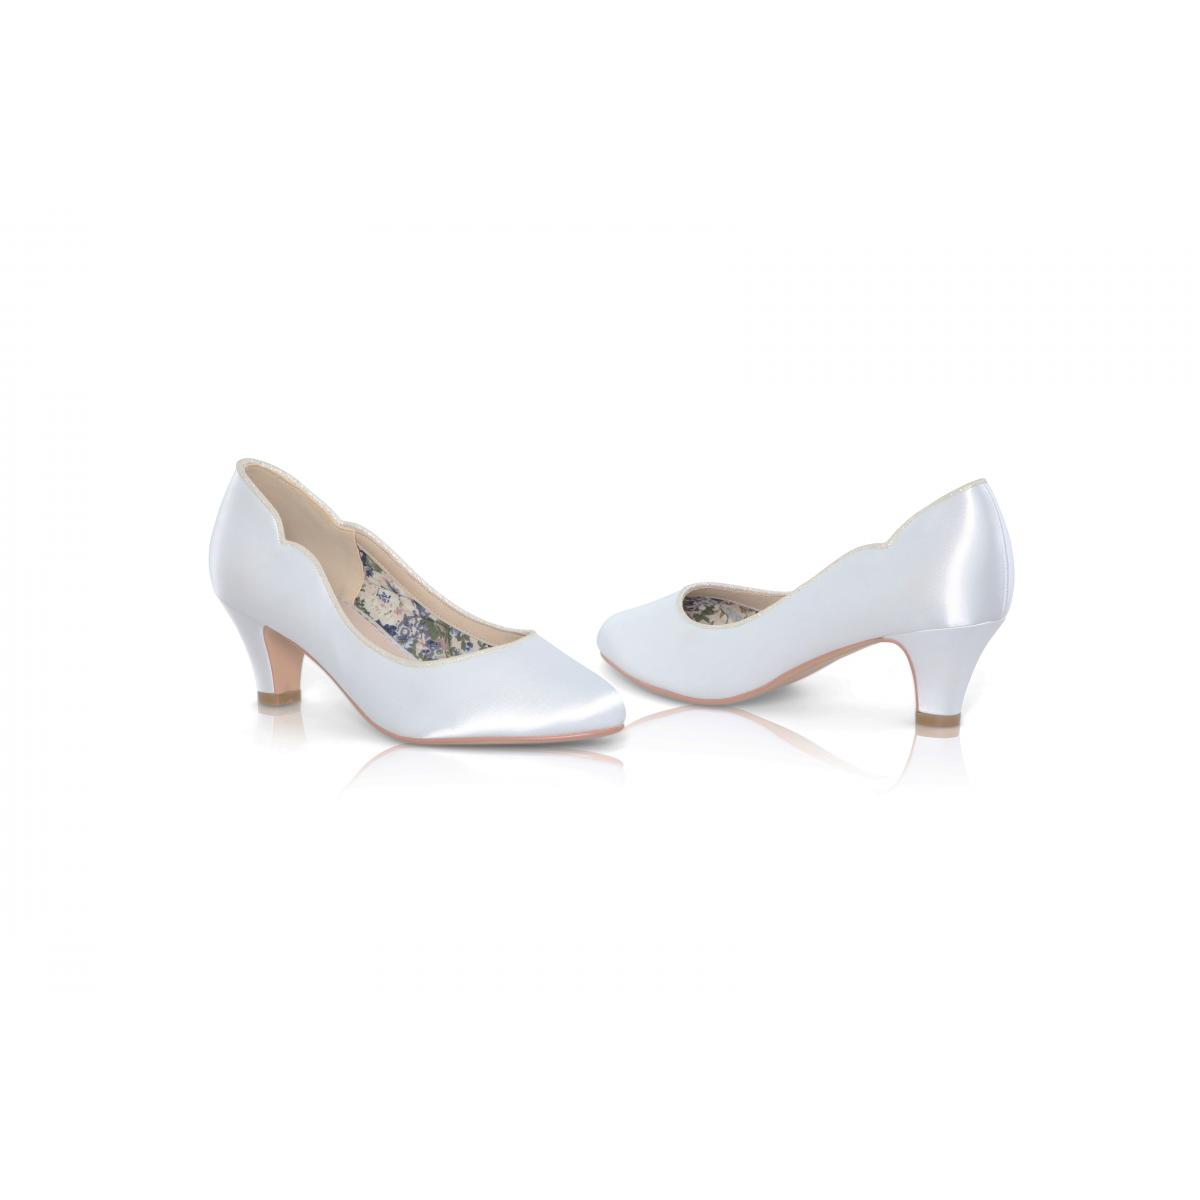 Perfect Bridal Adelyn Shoes - Ivory Satin 4